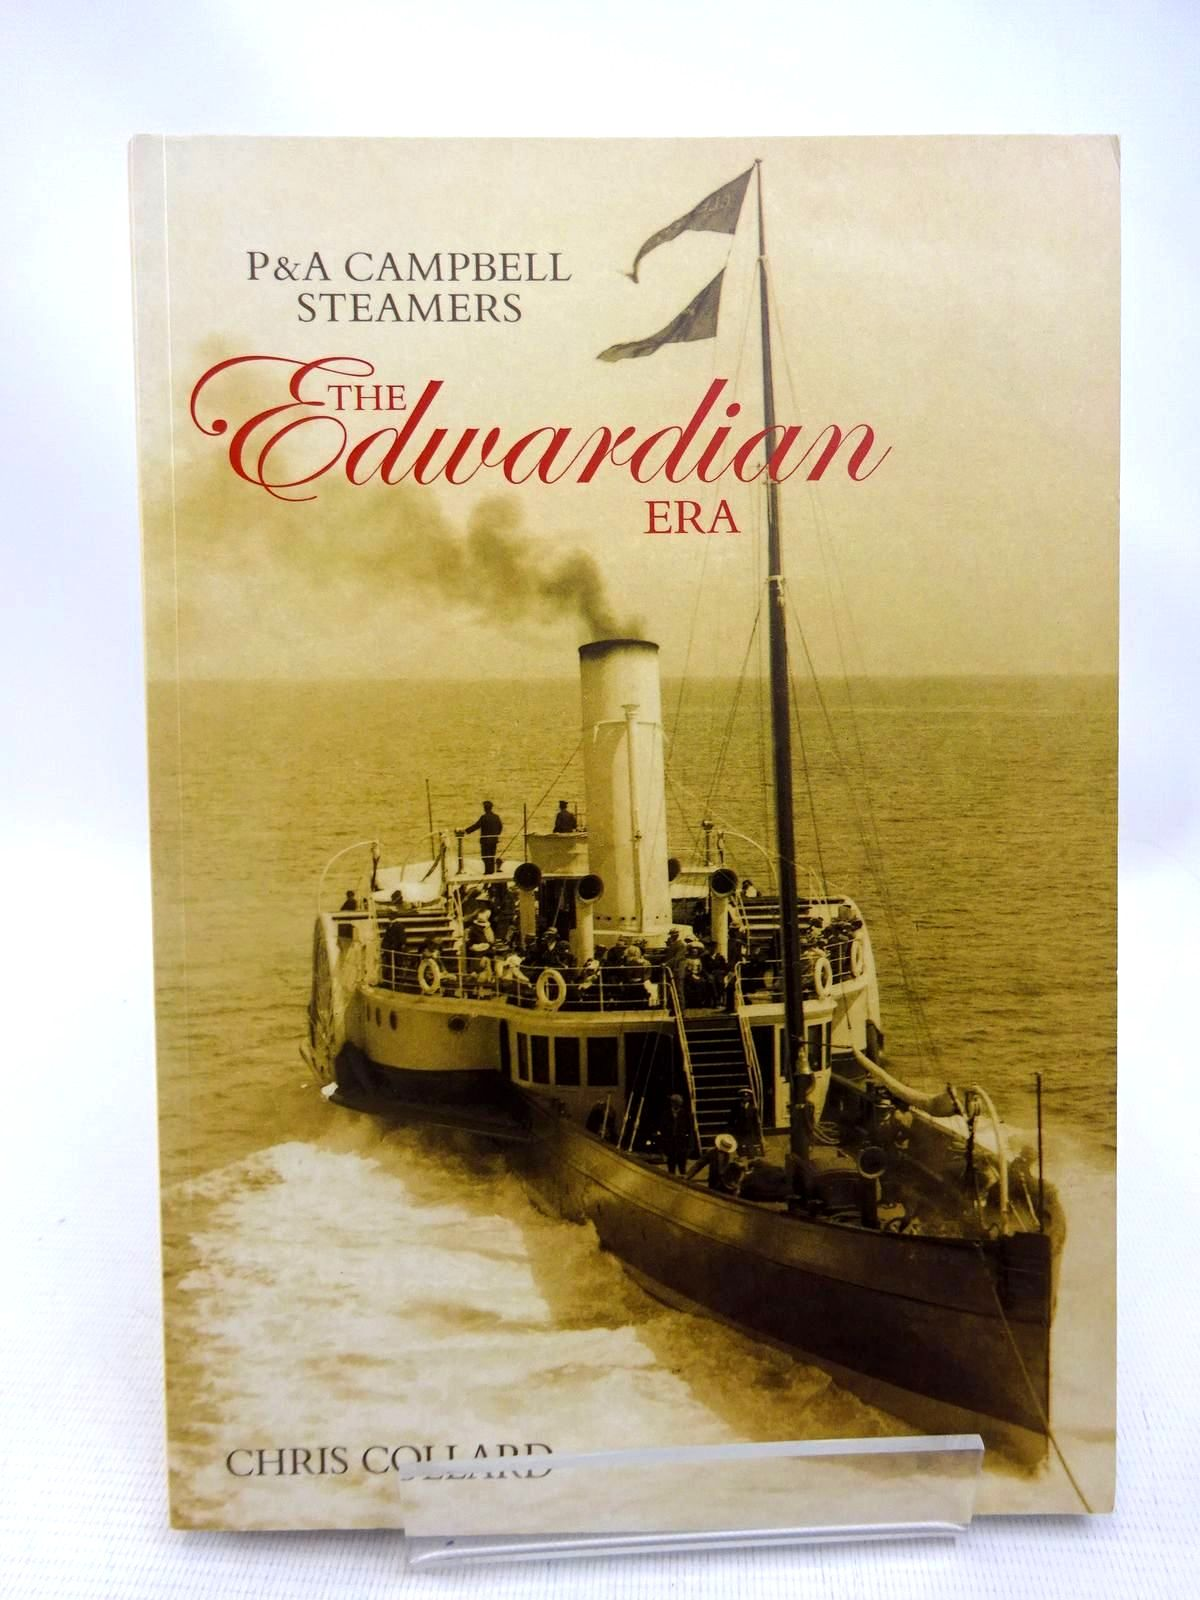 Photo of P&A CAMPBELL STEAMERS THE EDWARDIAN ERA